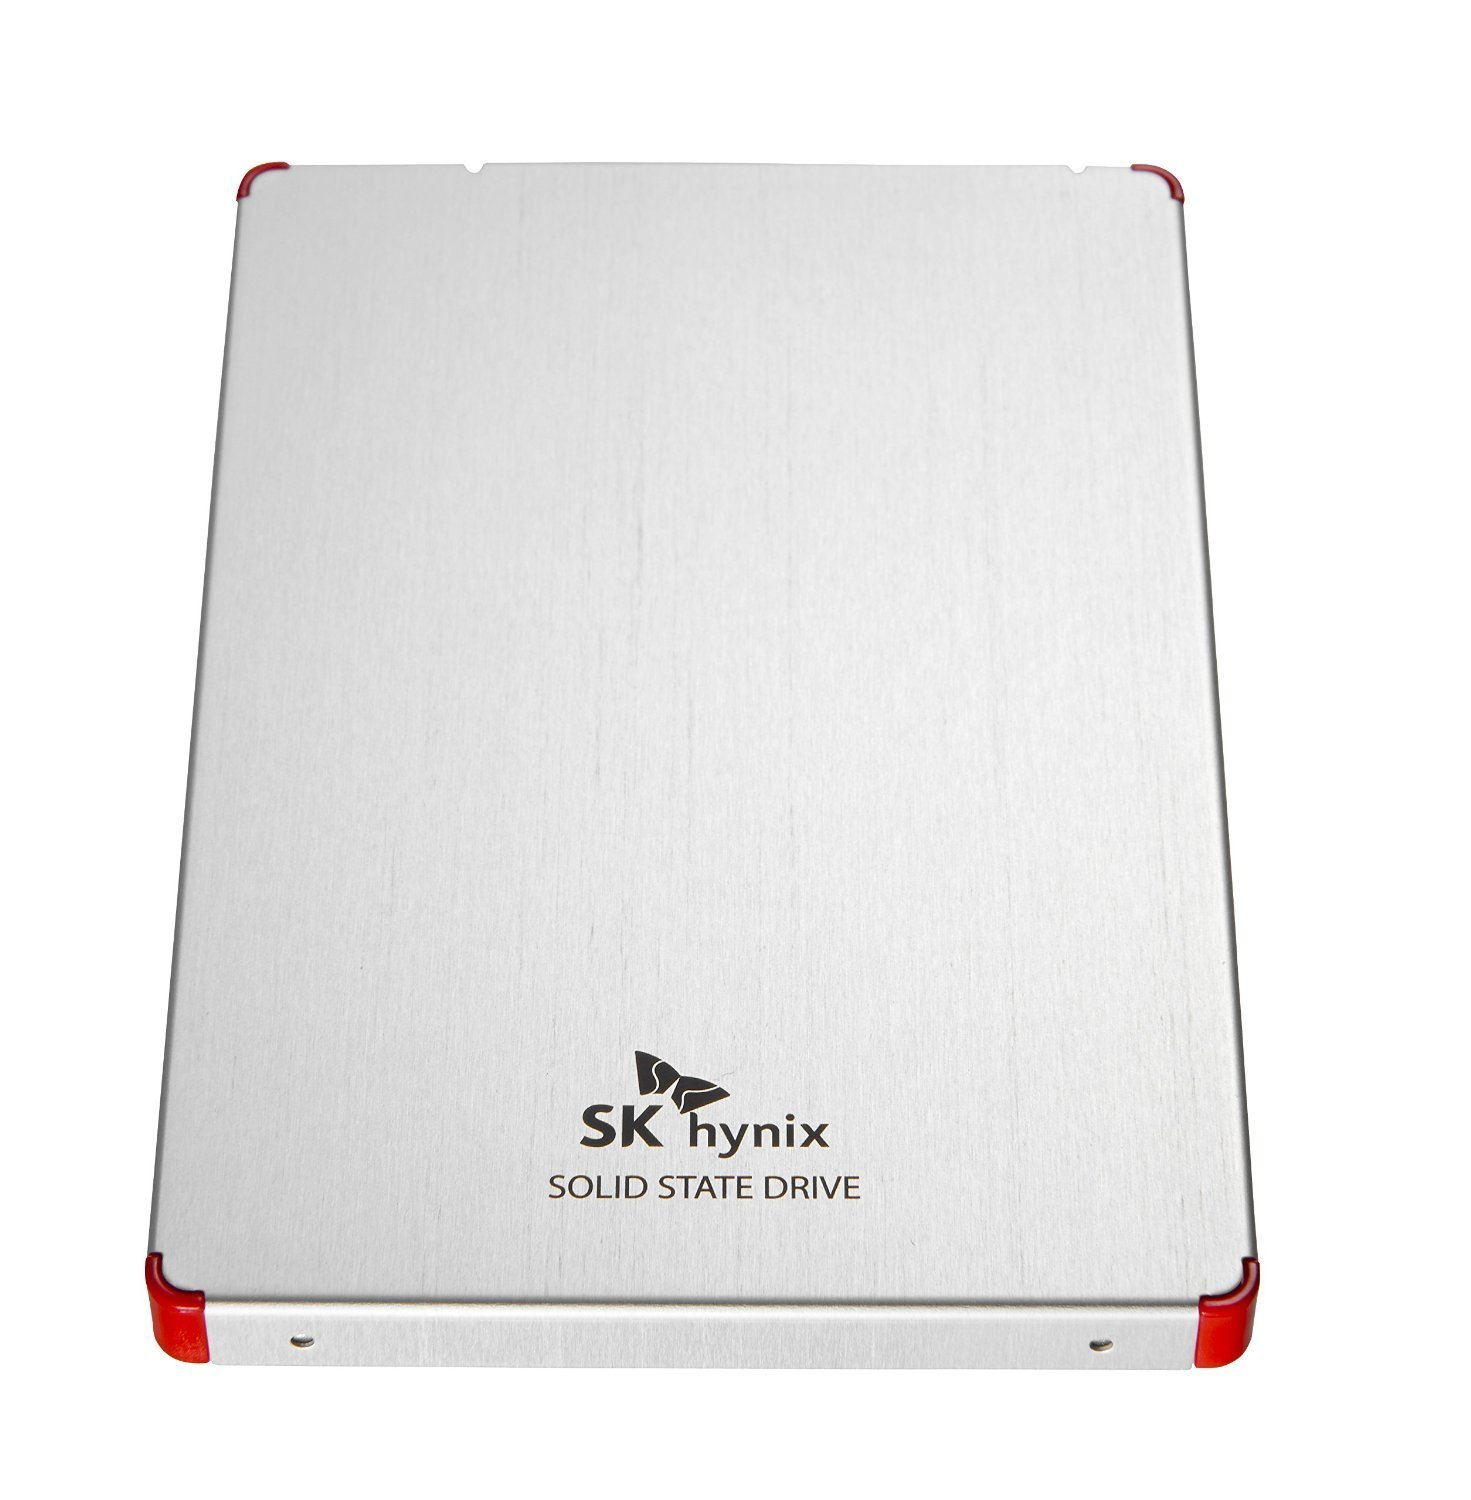 SK HYNIX 256GB 2.5in SATA HDD - NEW - NEW